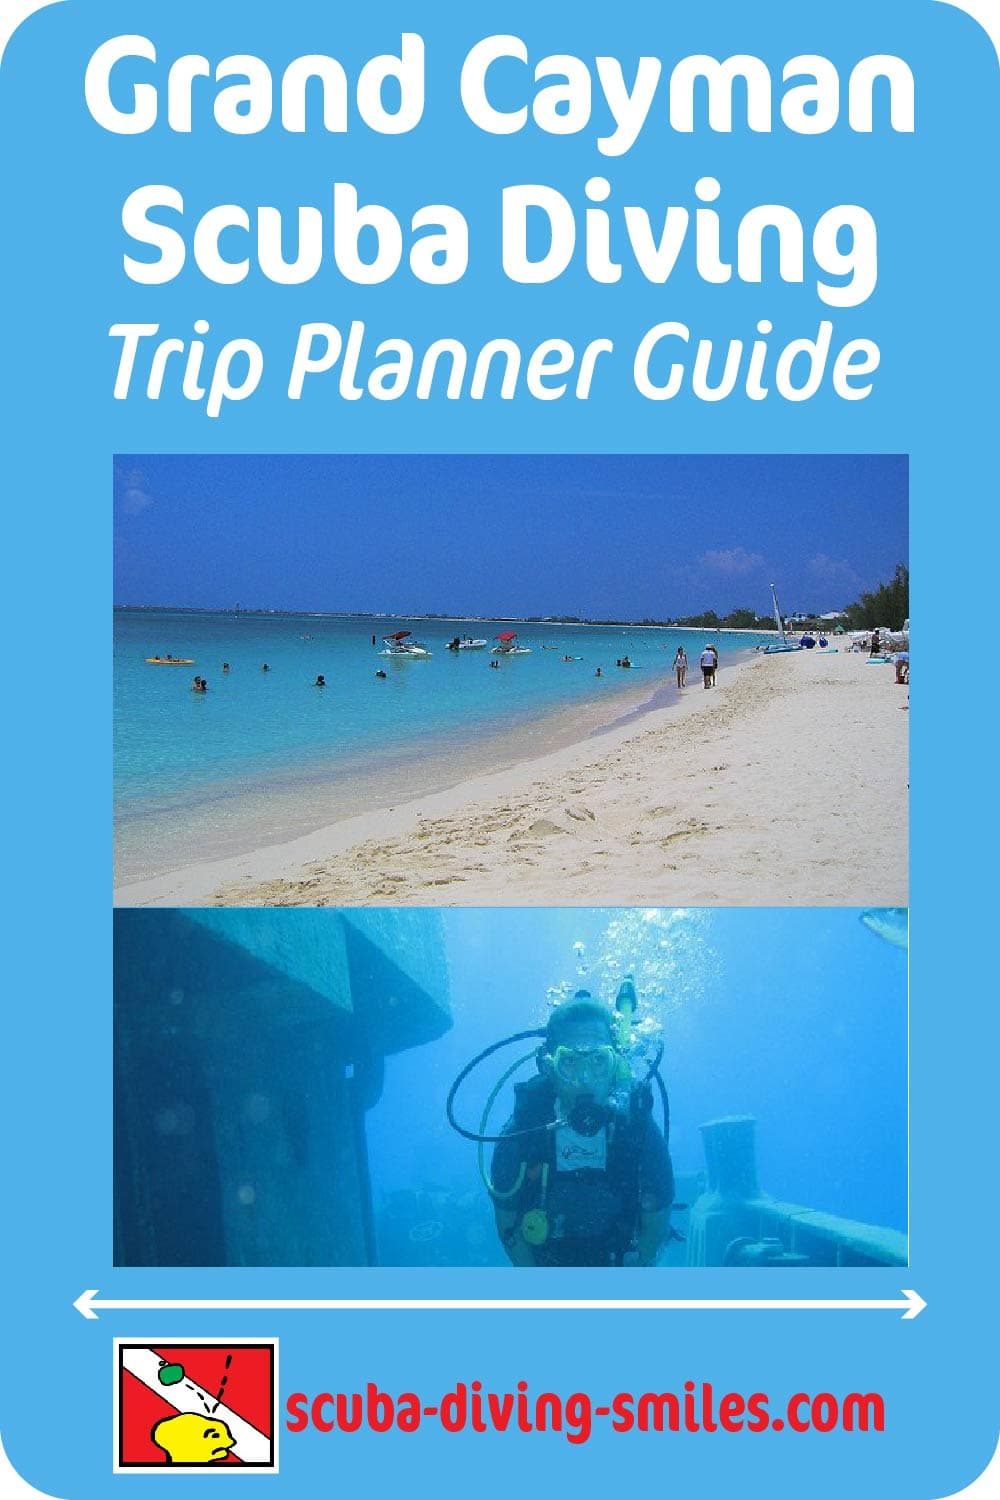 Grand Cayman scuba diving guide